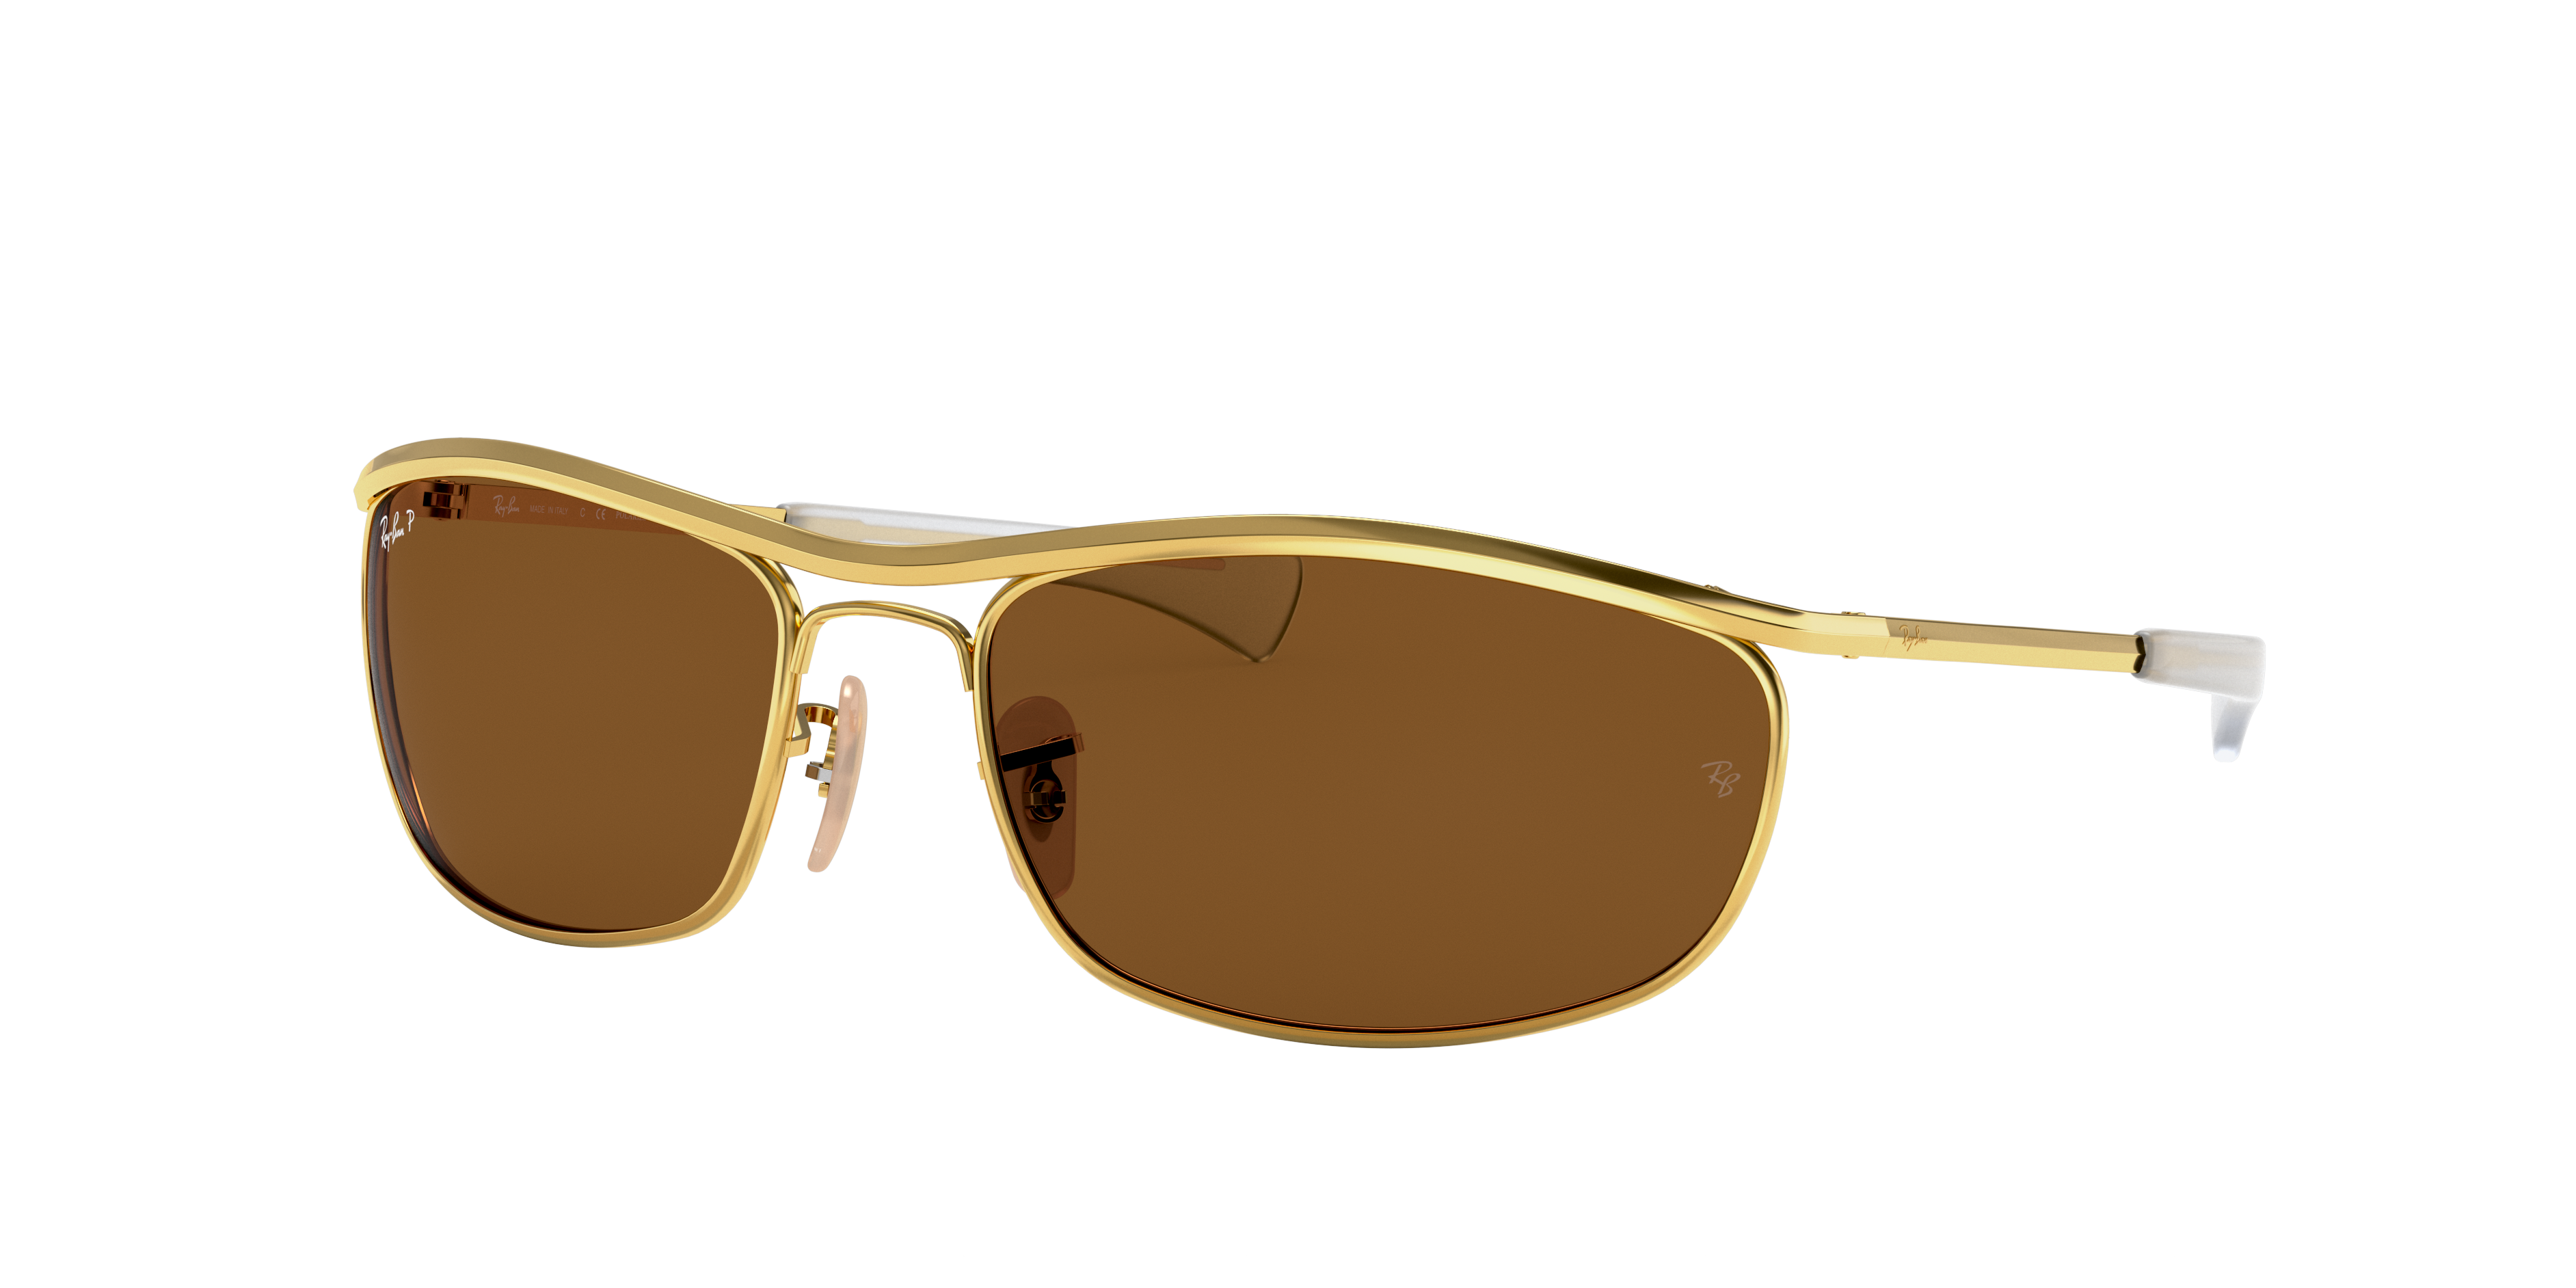 Ray-Ban Olympian I Deluxe Gold, Polarized Brown Lenses - RB3119M